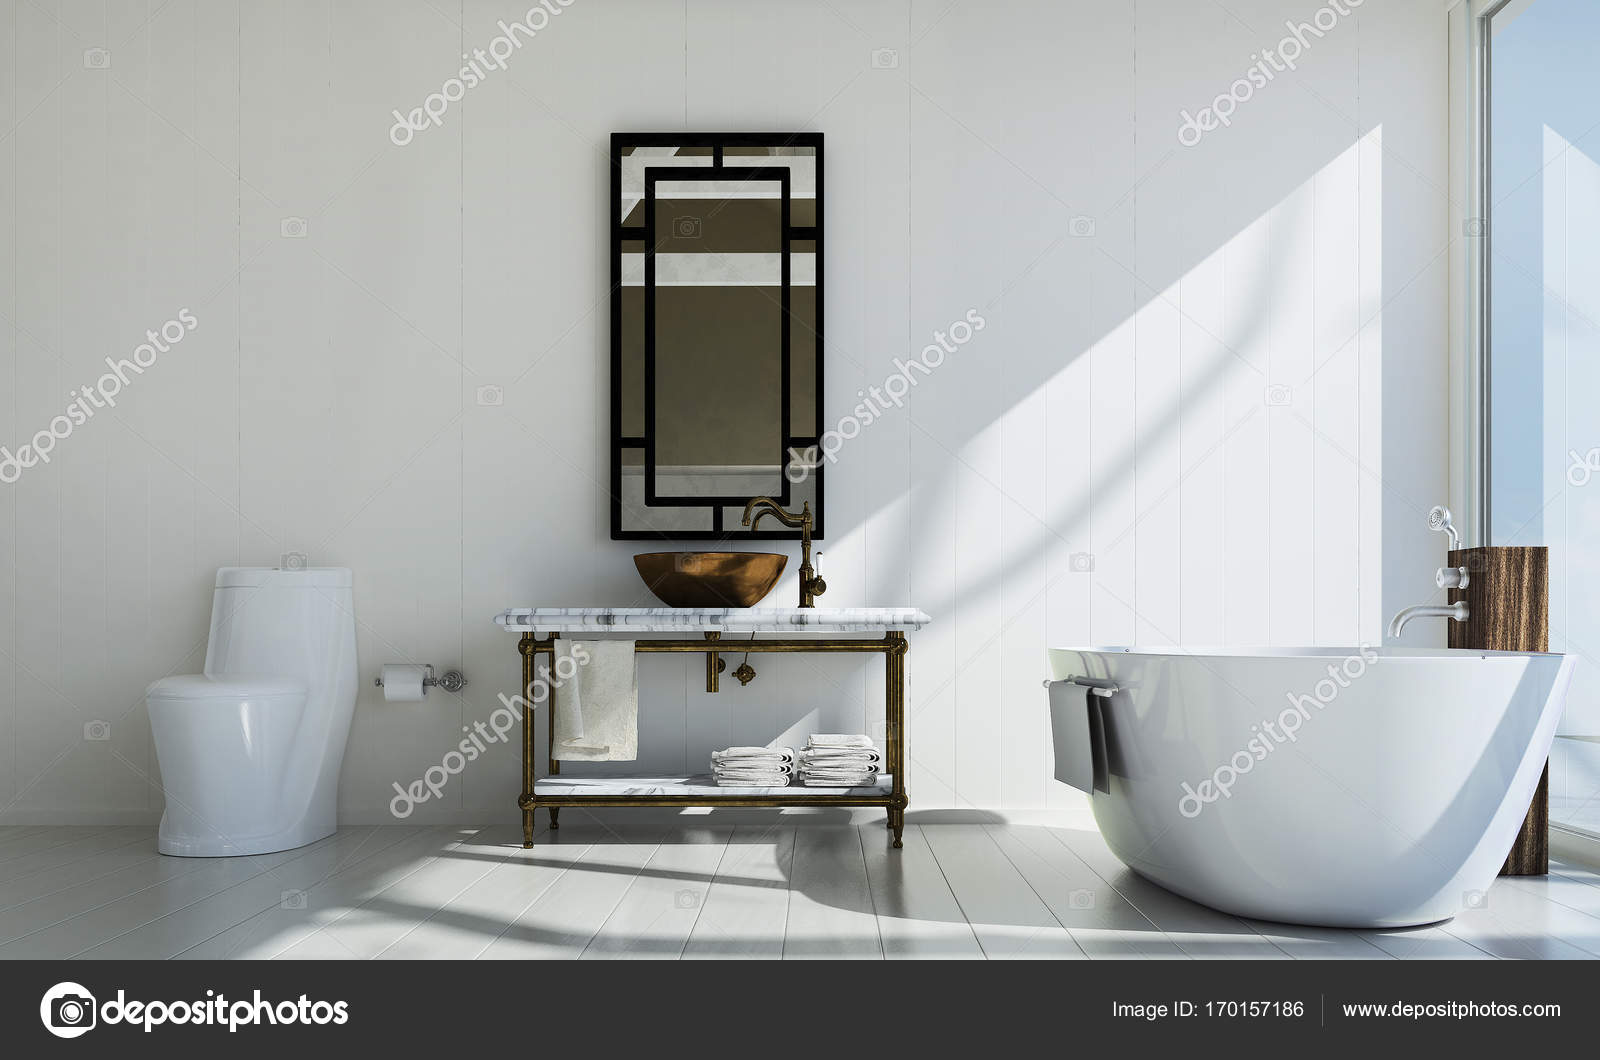 The luxury bathroom interior design and concrete wall texture ...